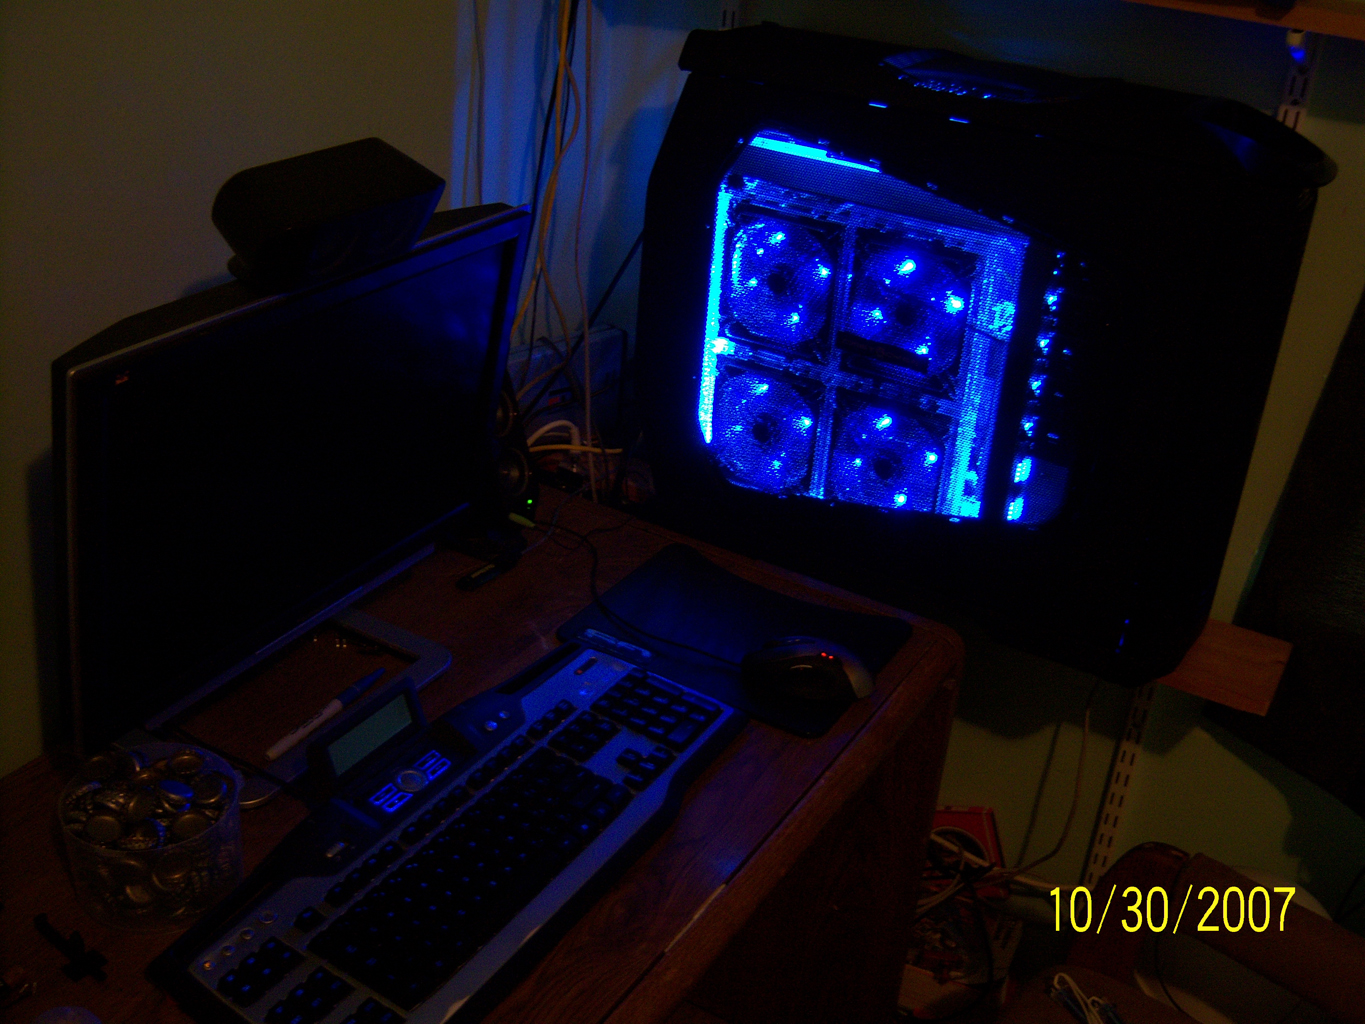 That warm glow means it's happy! Still can't decide where to put the other 4 cathodes I got.